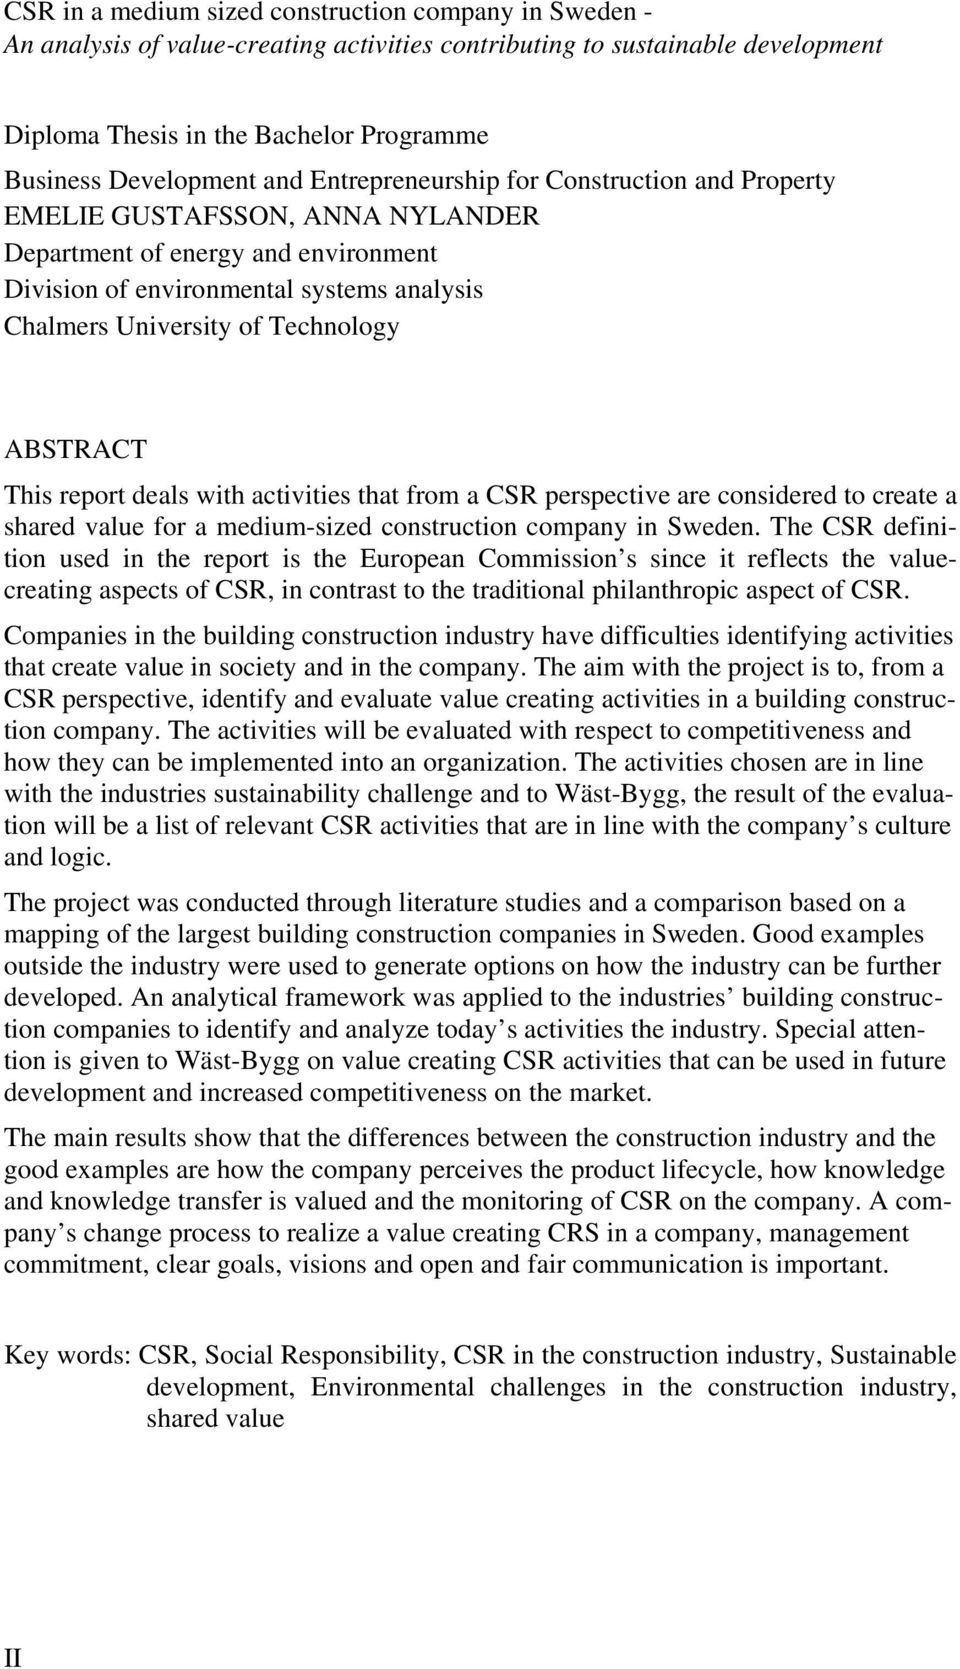 ABSTRACT This report deals with activities that from a CSR perspective are considered to create a shared value for a medium-sized construction company in Sweden.